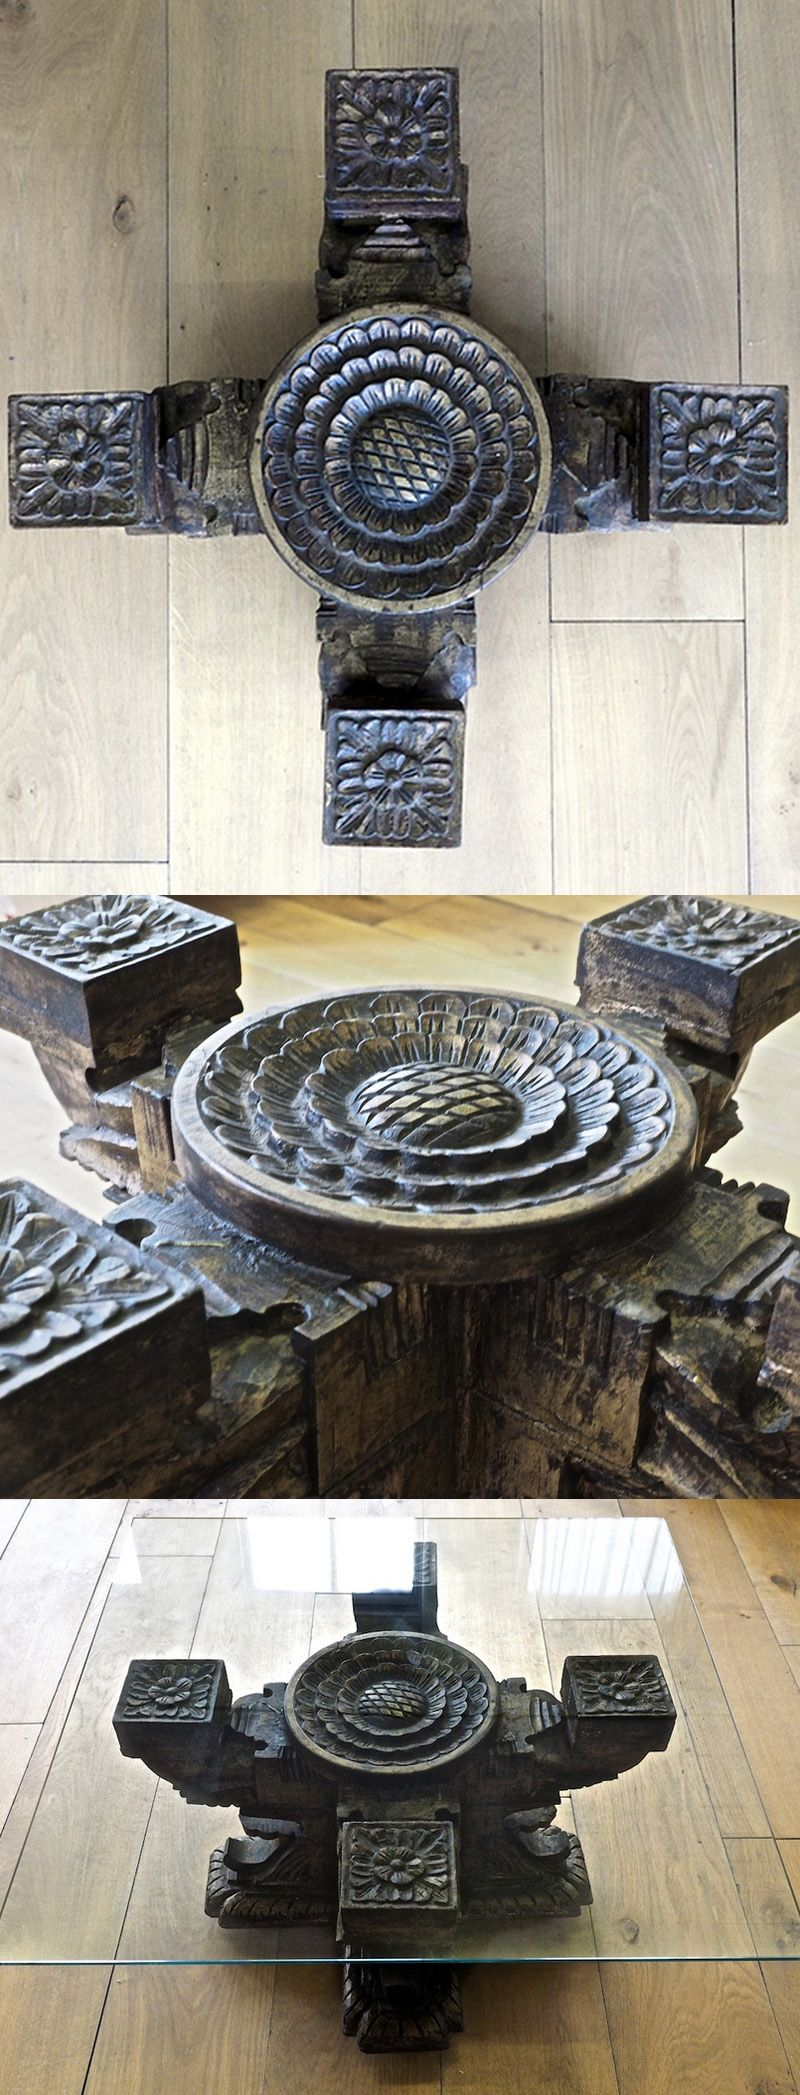 This heavily carved wooden table is from South India